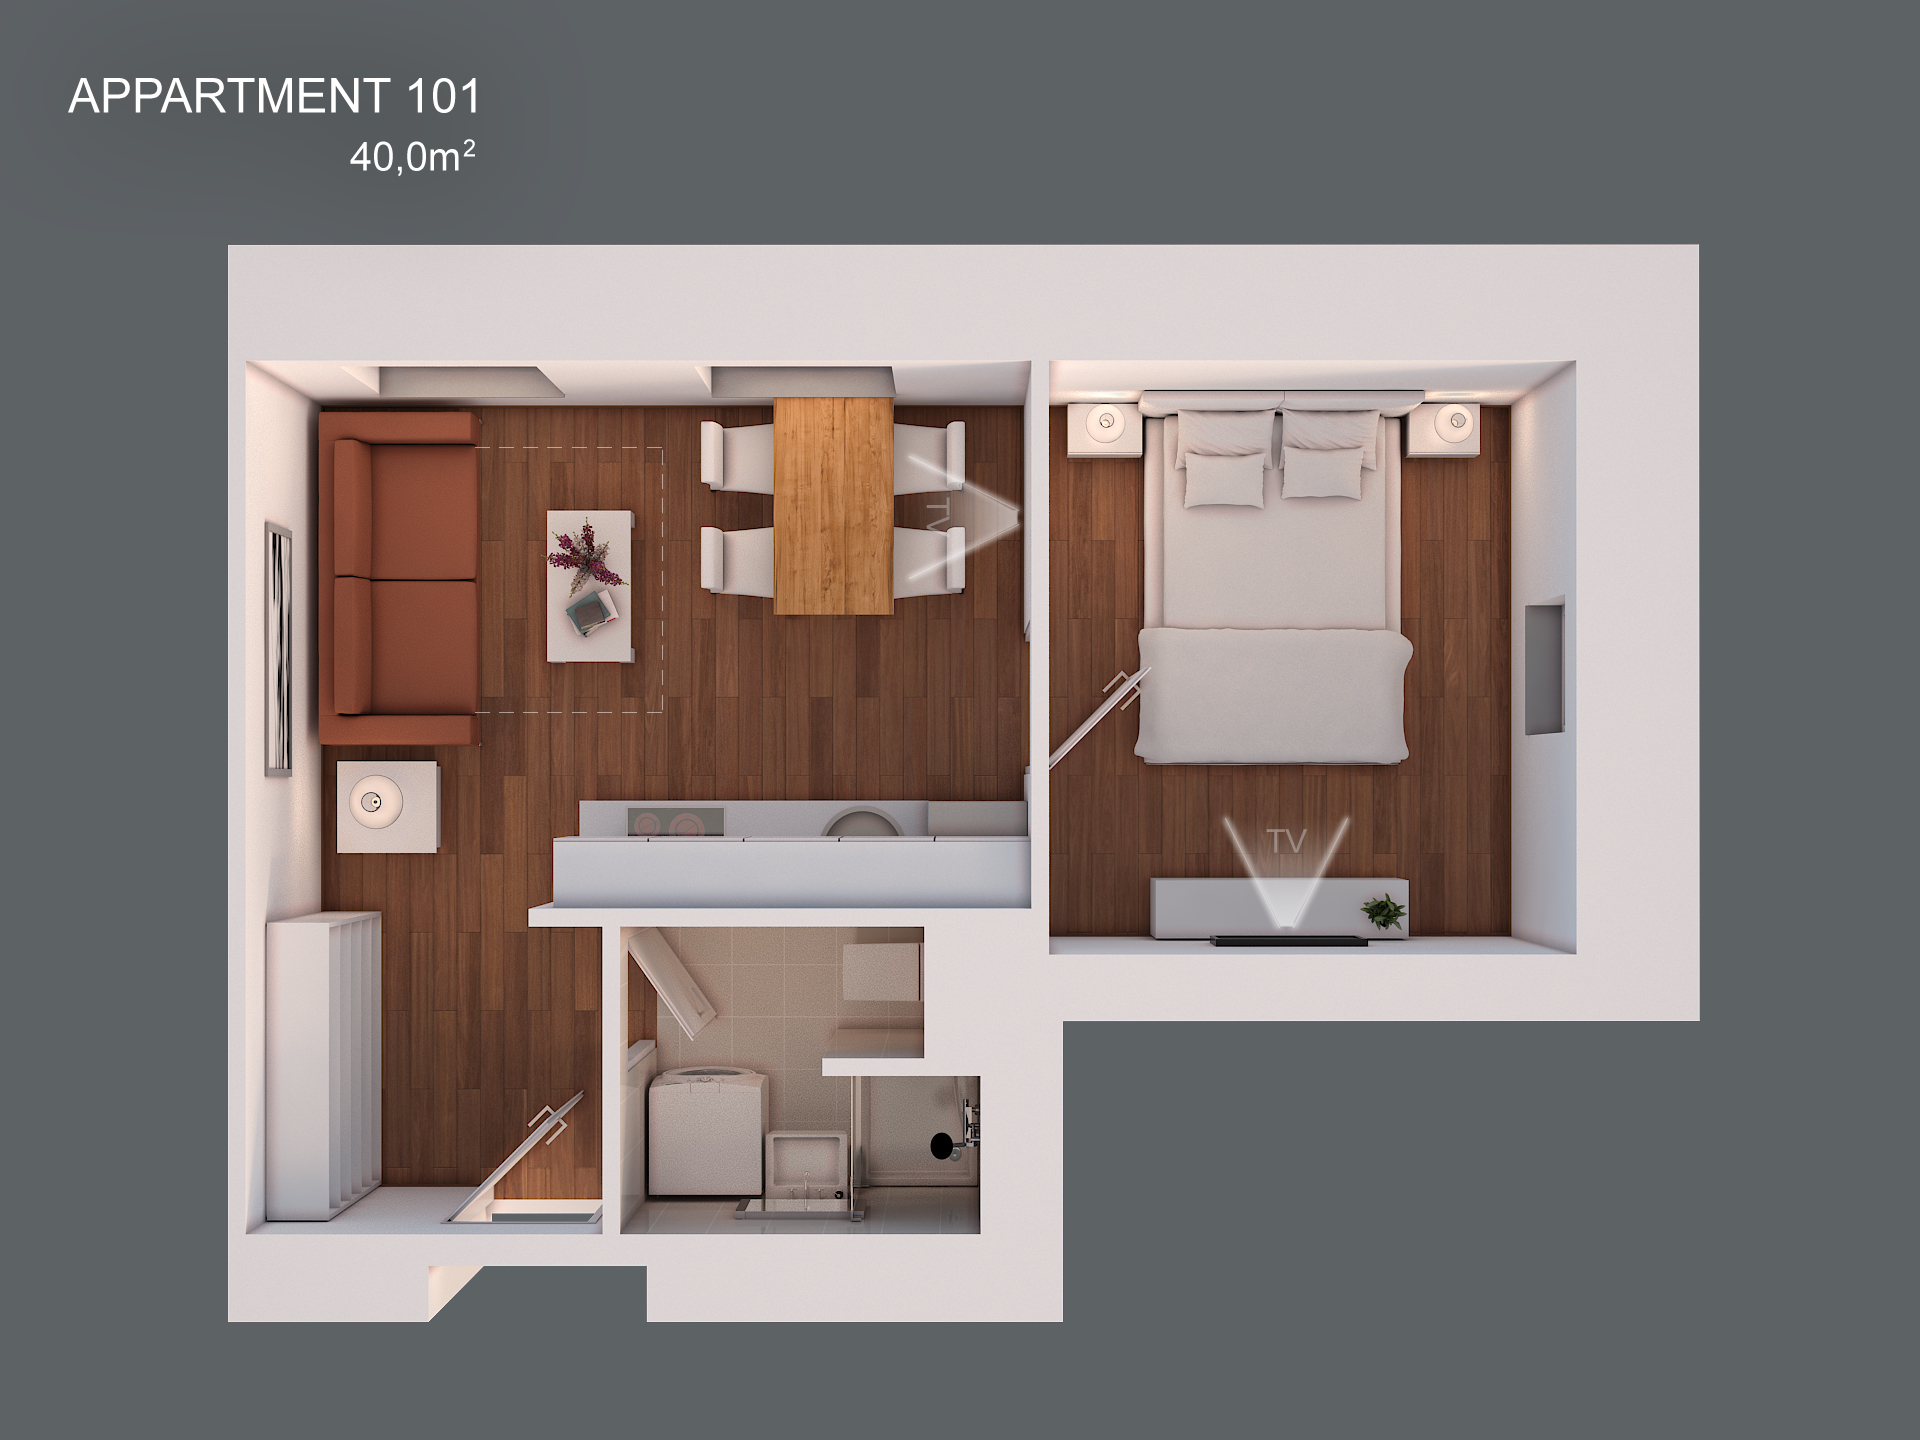 Apartment 101 layout